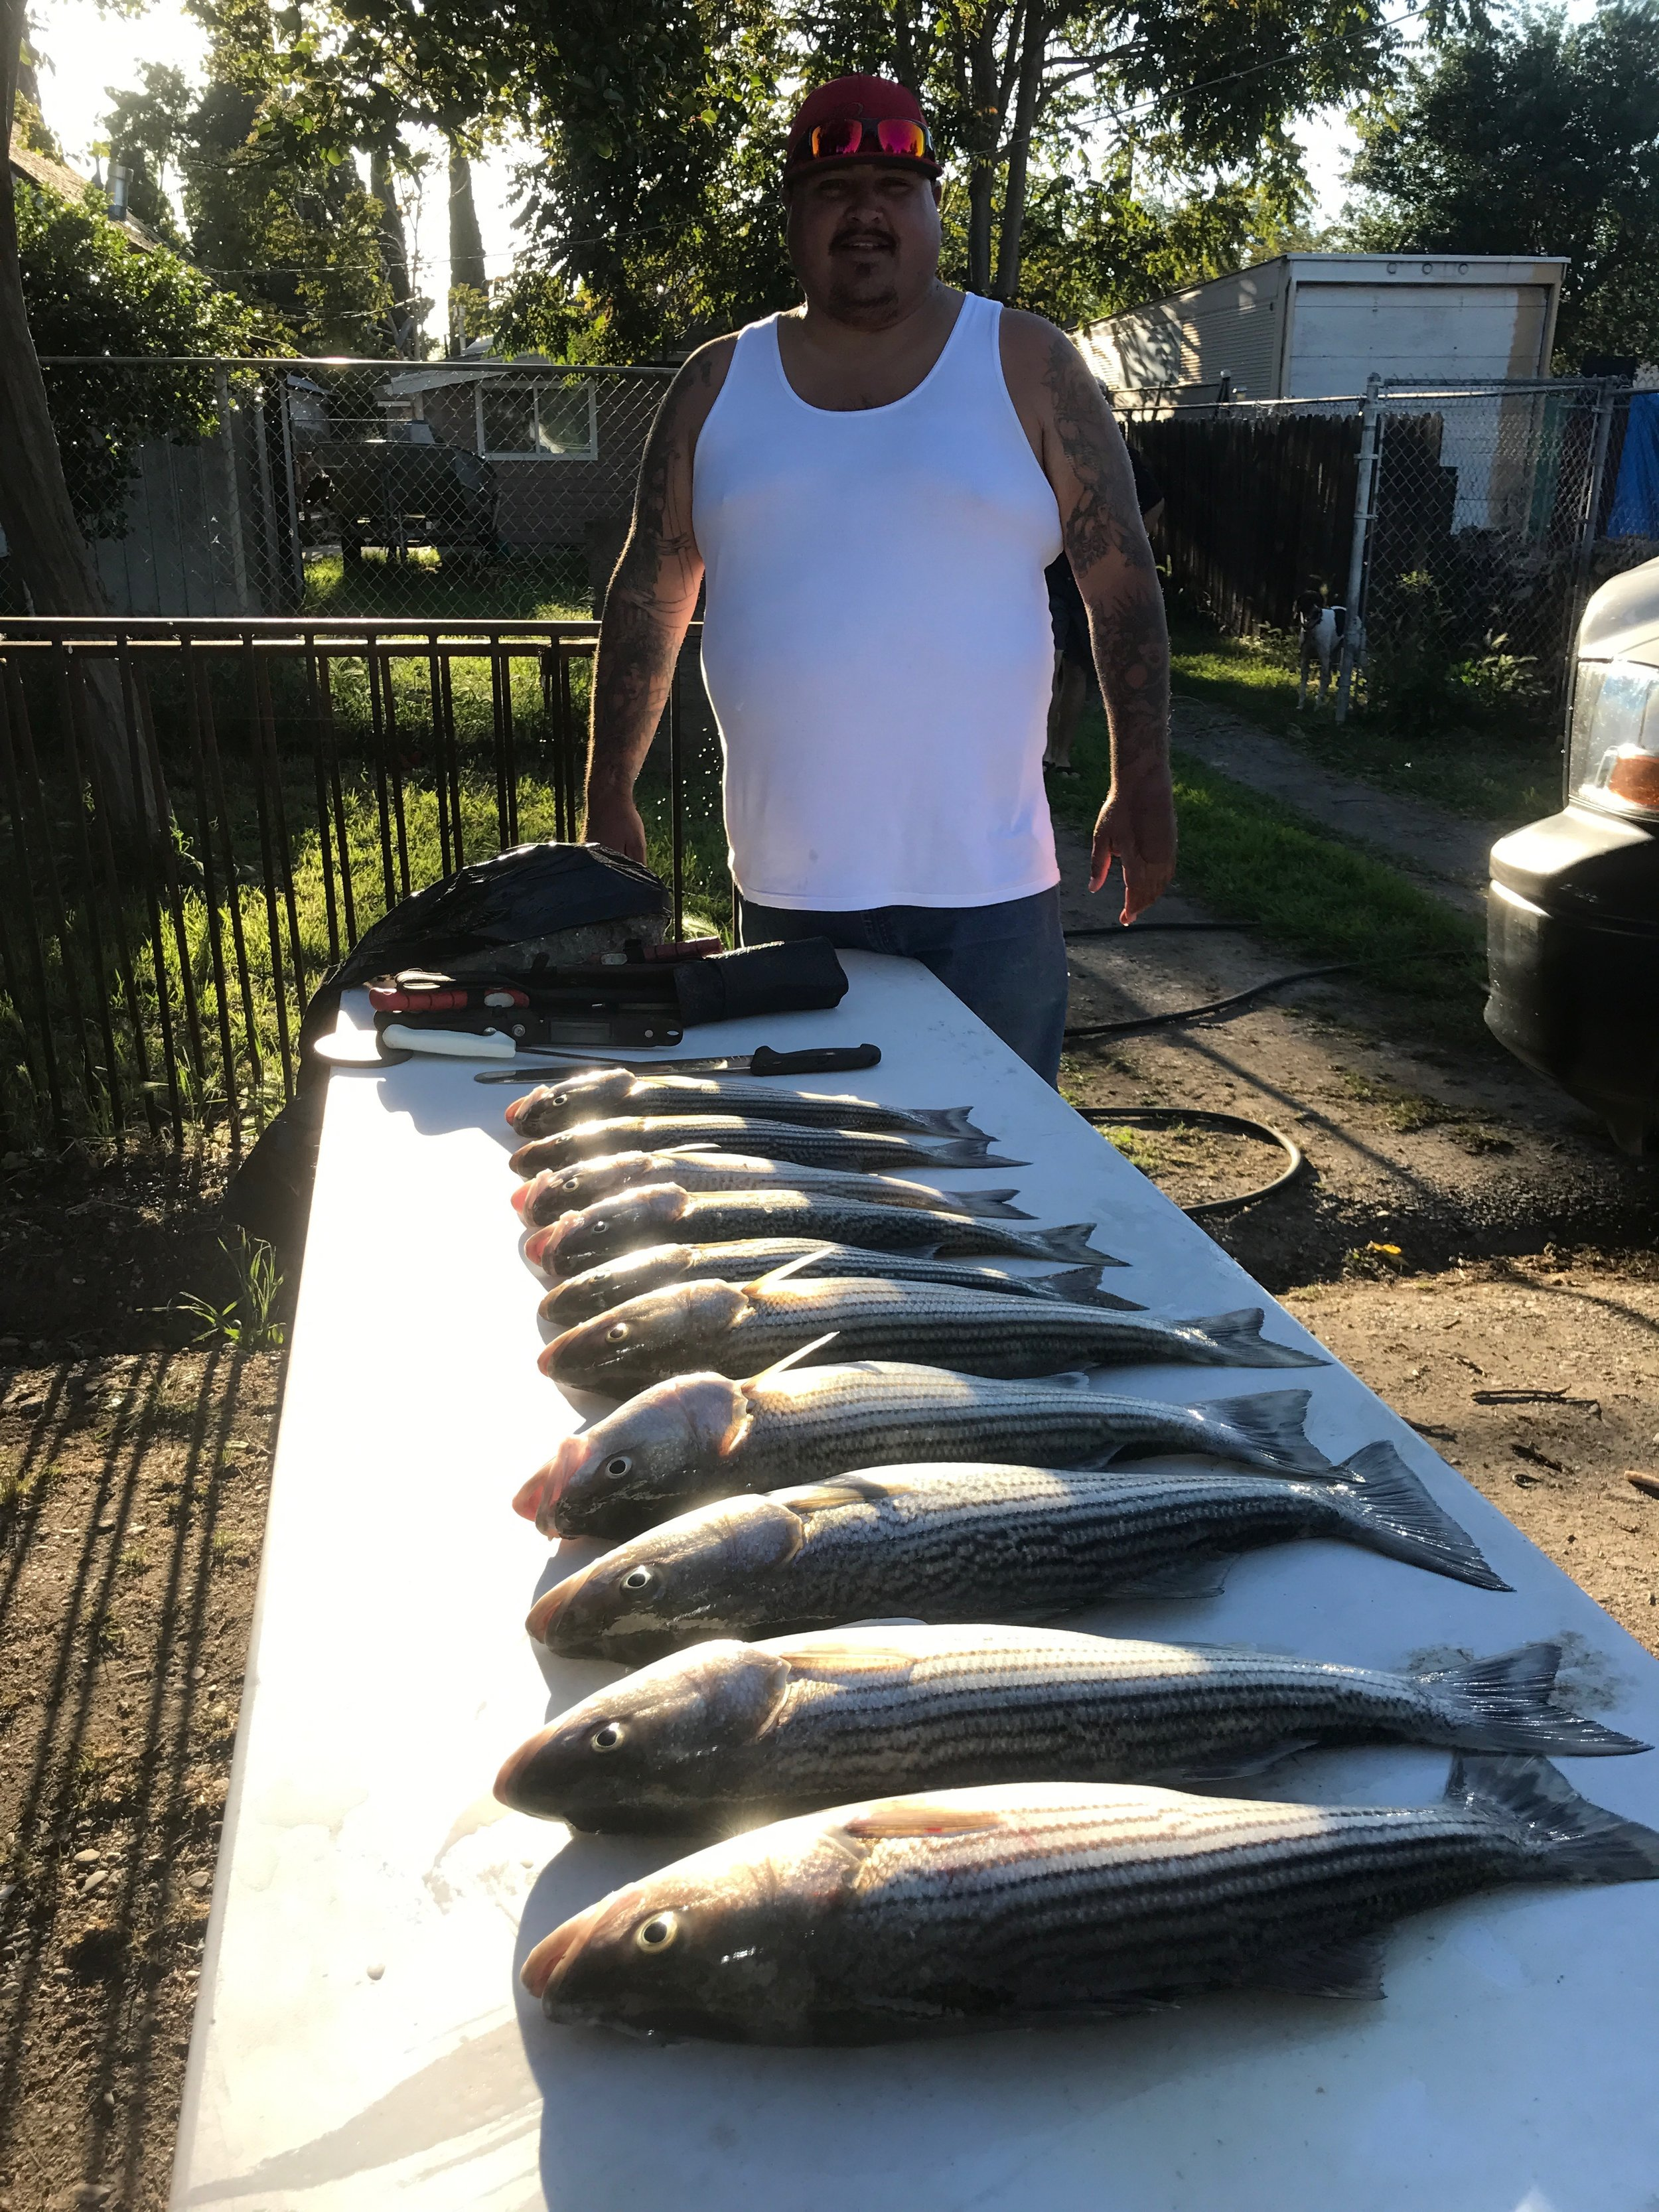 Joe Gamez with  phenixrods.com   and owner and captain of  xsportfishing.com  is pictured with boat limits of linesides he and the crew of  salmonsacriver.com  caught in April, 2017 while drifting live minnows on the Sacramento River near Colusa, Ca.